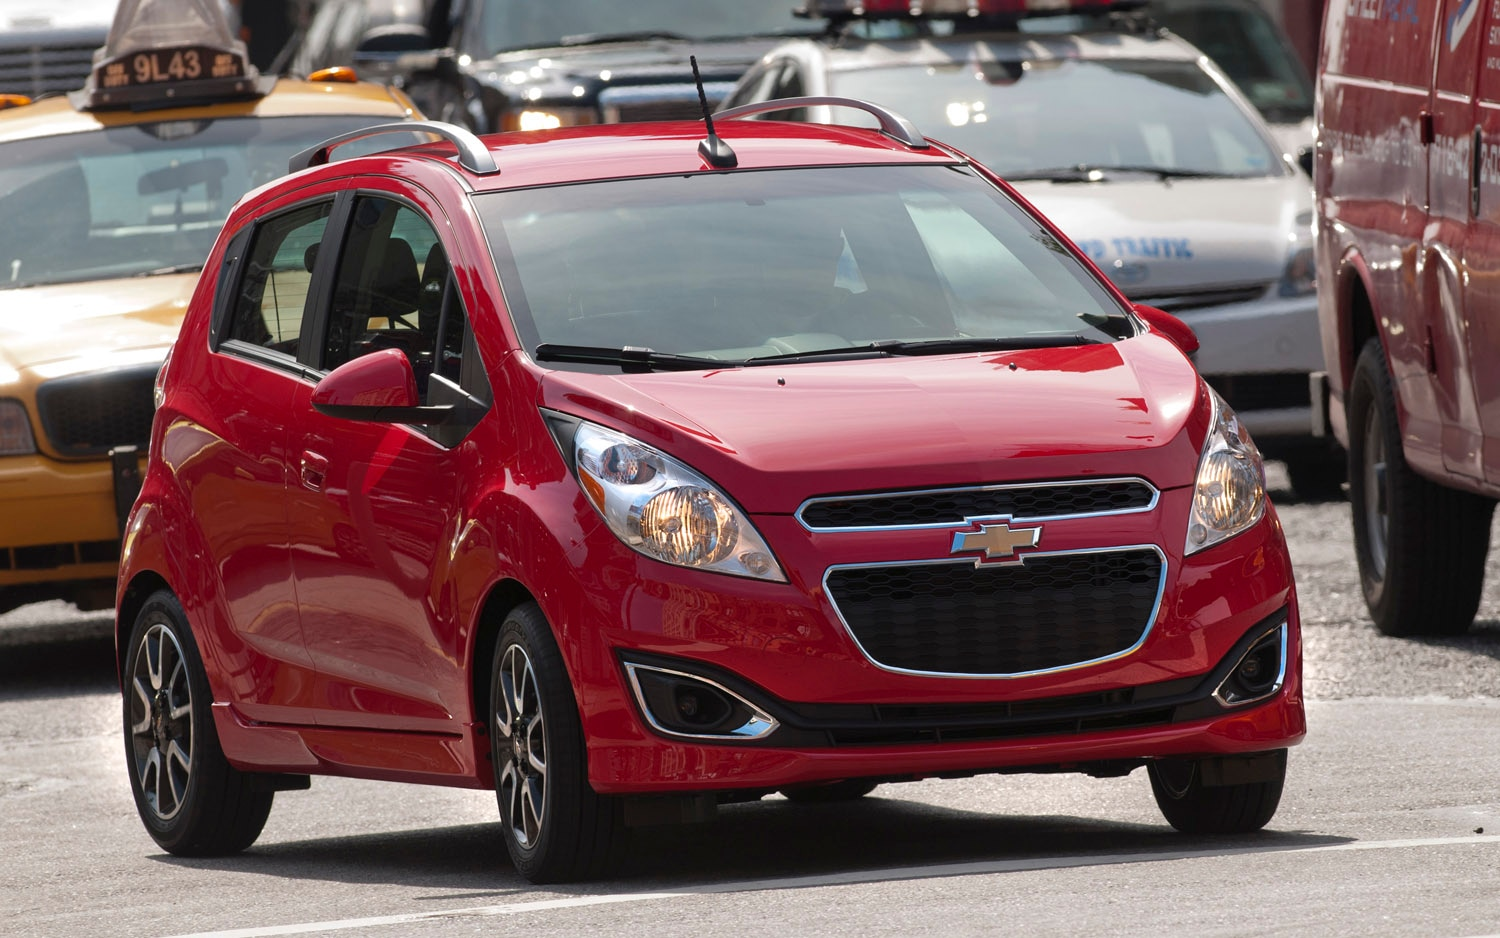 2013 Chevrolet Spark Front Three Quarter NYC1